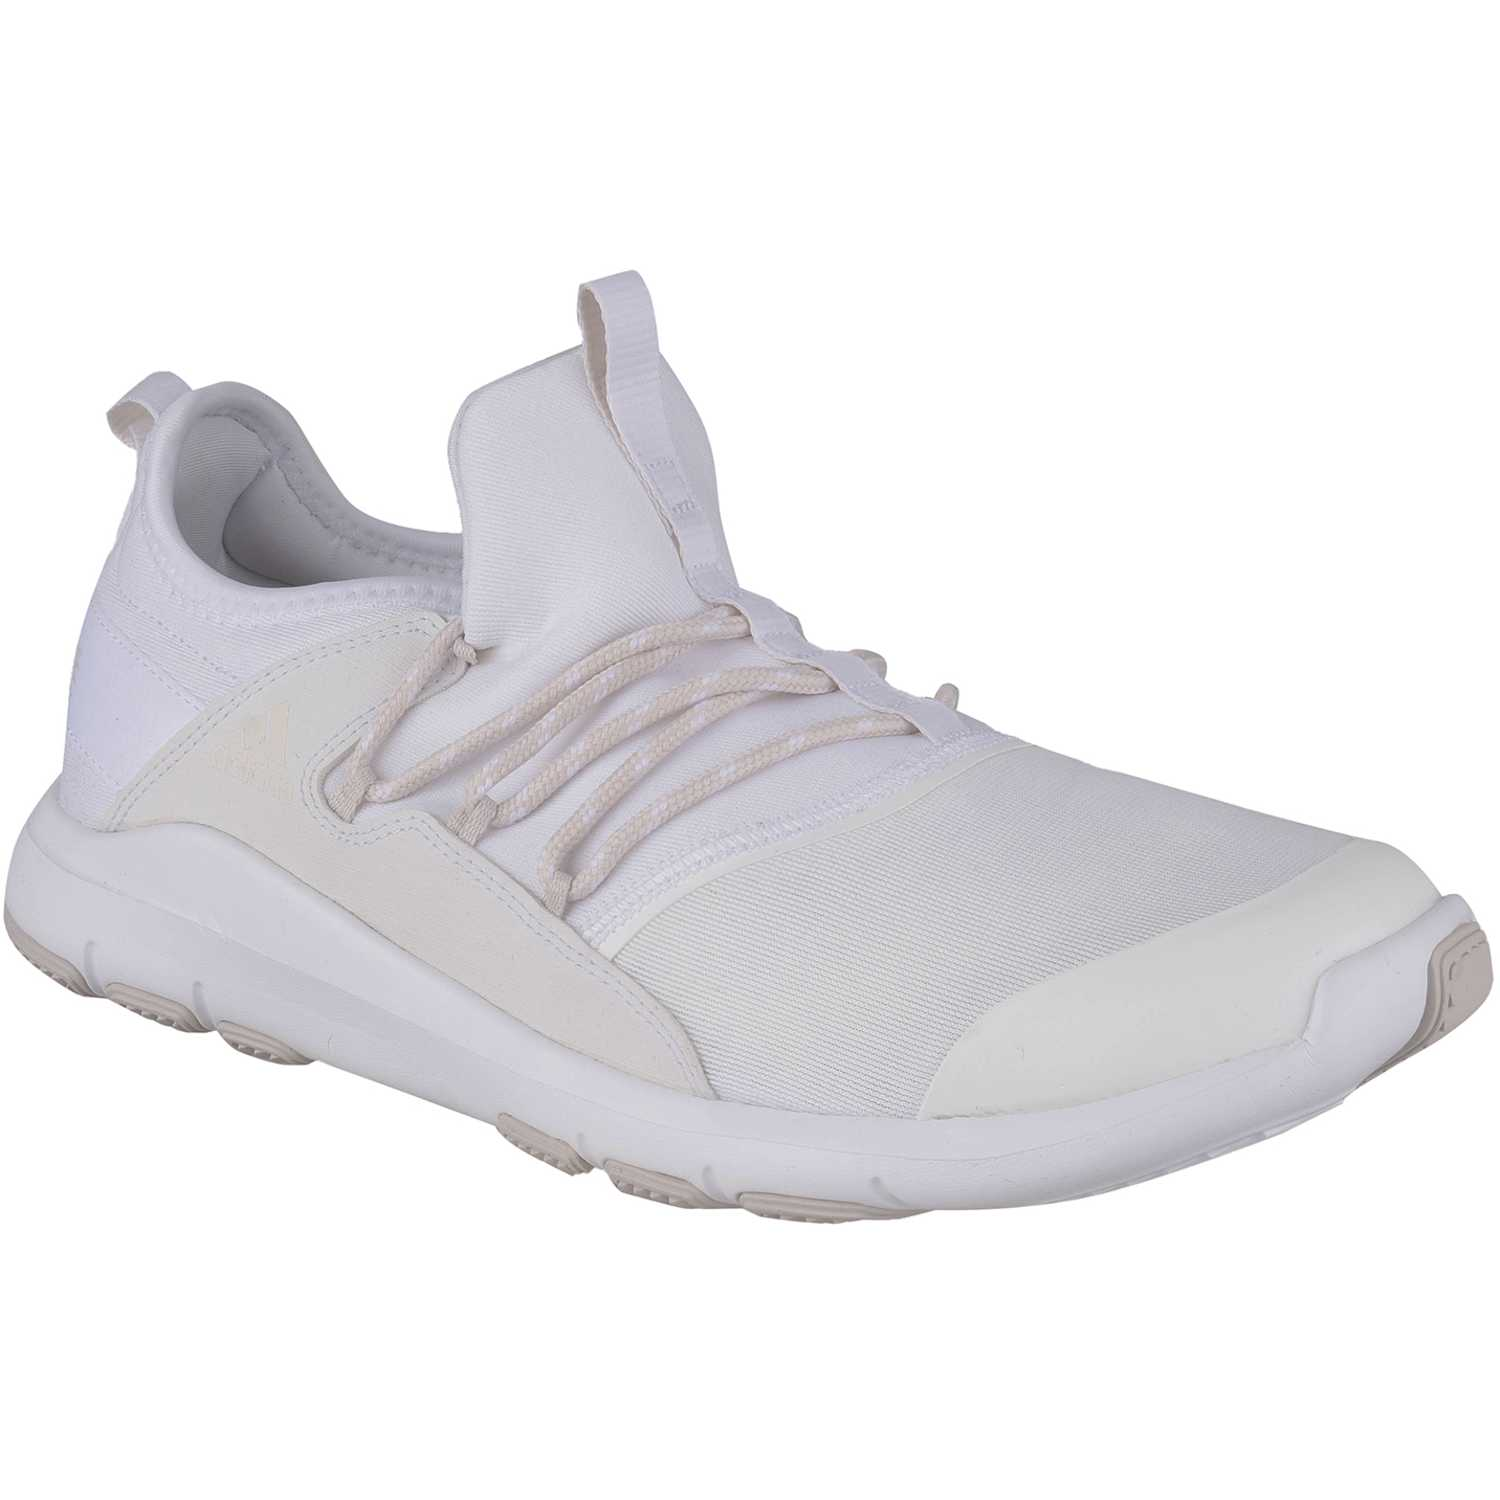 finest selection 024c8 ea023 Zapatilla de Hombre Adidas Blanco crazymove tr m